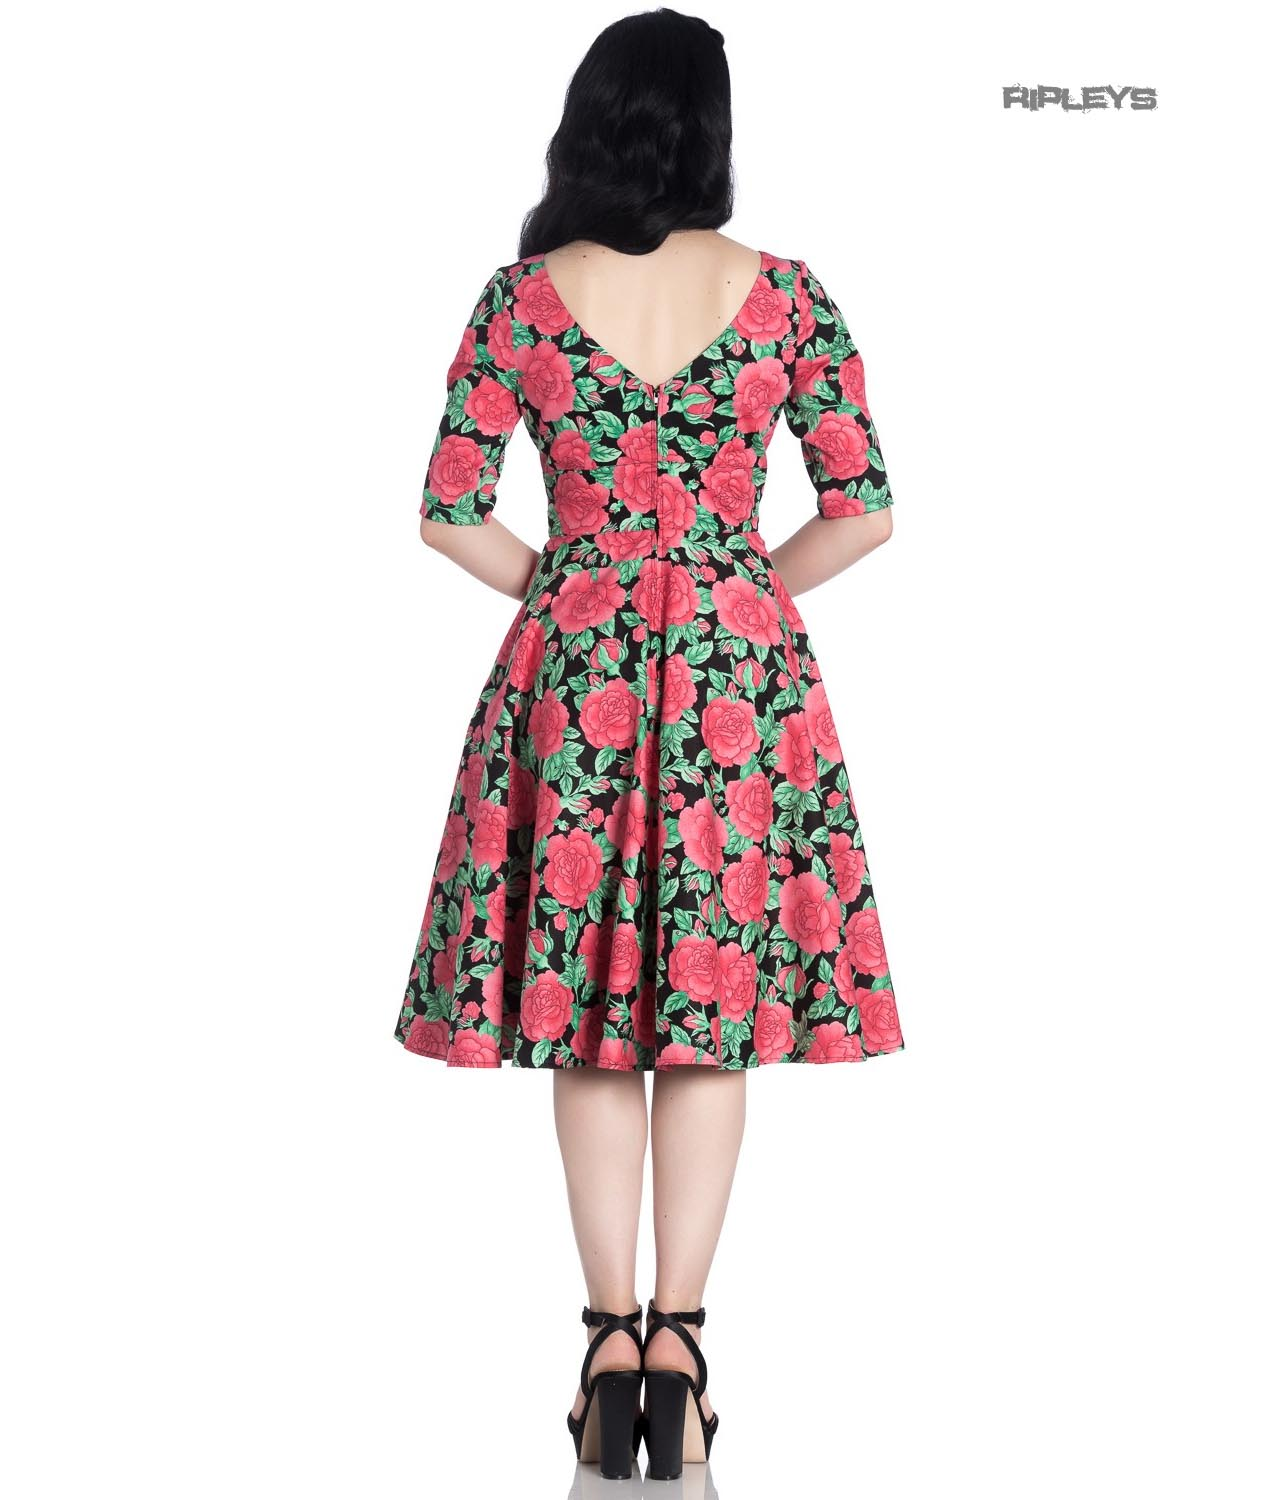 Hell-Bunny-40s-50s-Black-Pin-Up-Vintage-Dress-DARCY-Pink-Roses-All-Sizes thumbnail 20